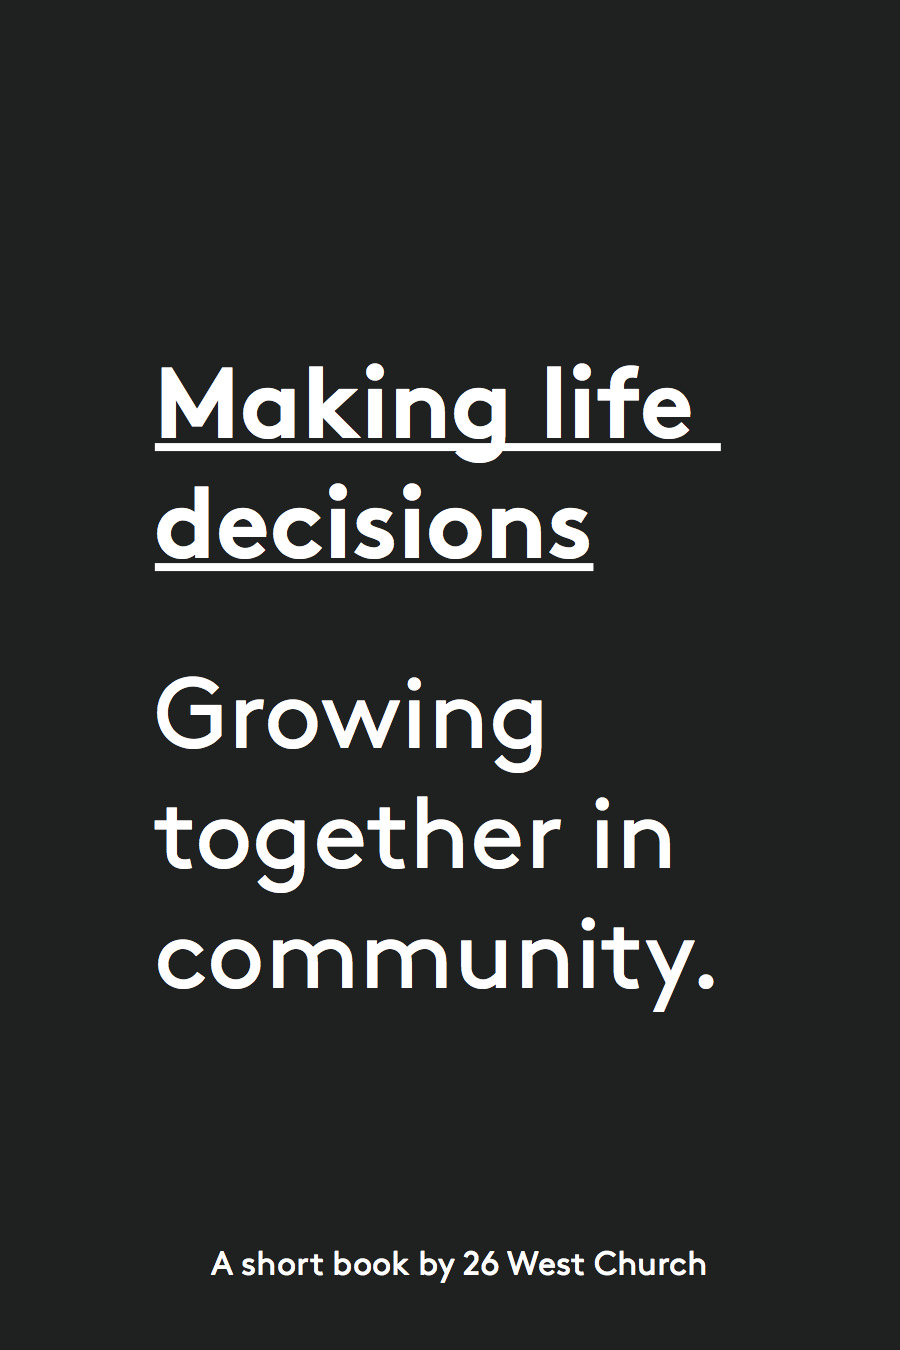 26 West Church SB_Making life decisions cover 1.0.jpg